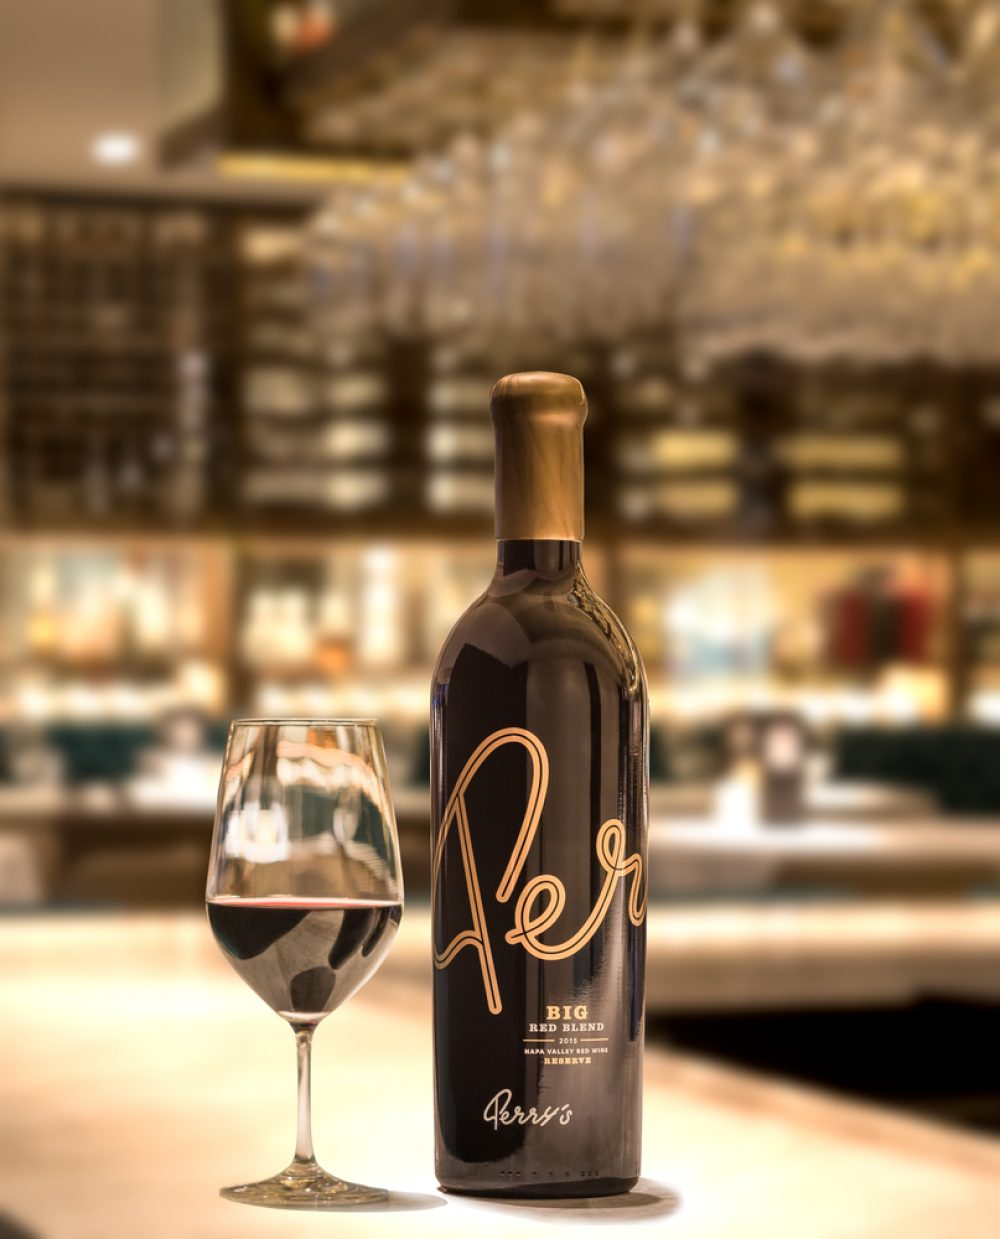 Big Red Blend Wine at Perry's Steakhouse & Grille in Oak Brook